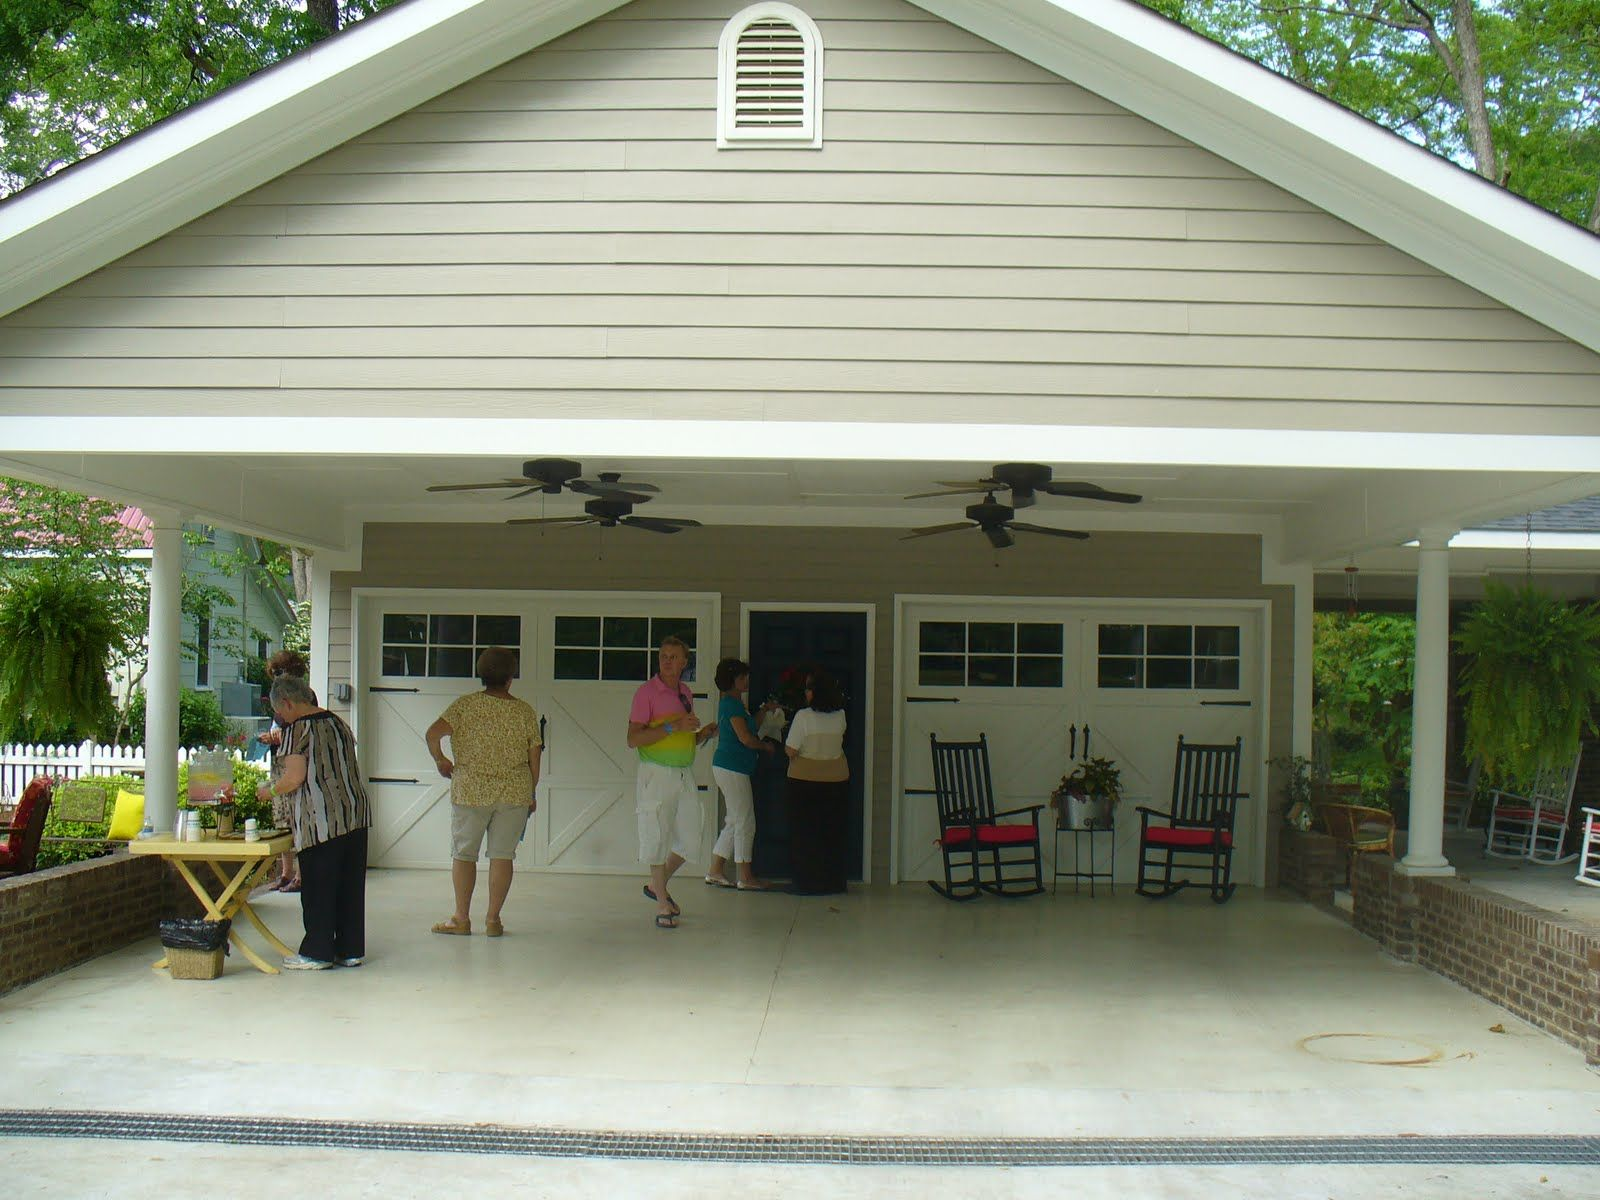 open carport This entry was posted in Uncategorized on